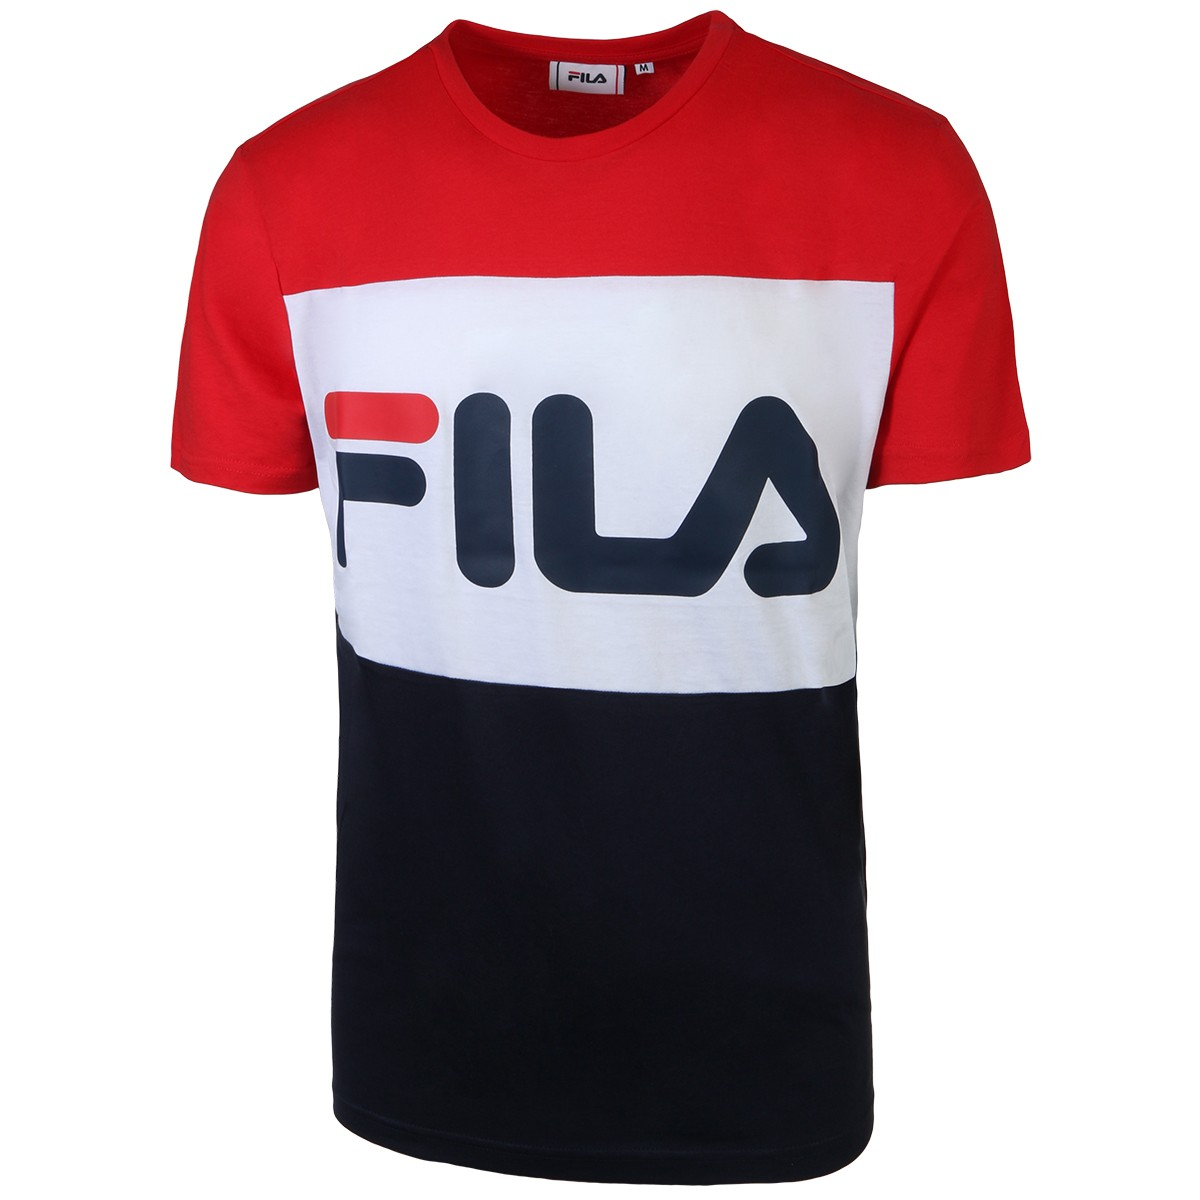 T-SHIRT FILA DAY 3 COULEURS